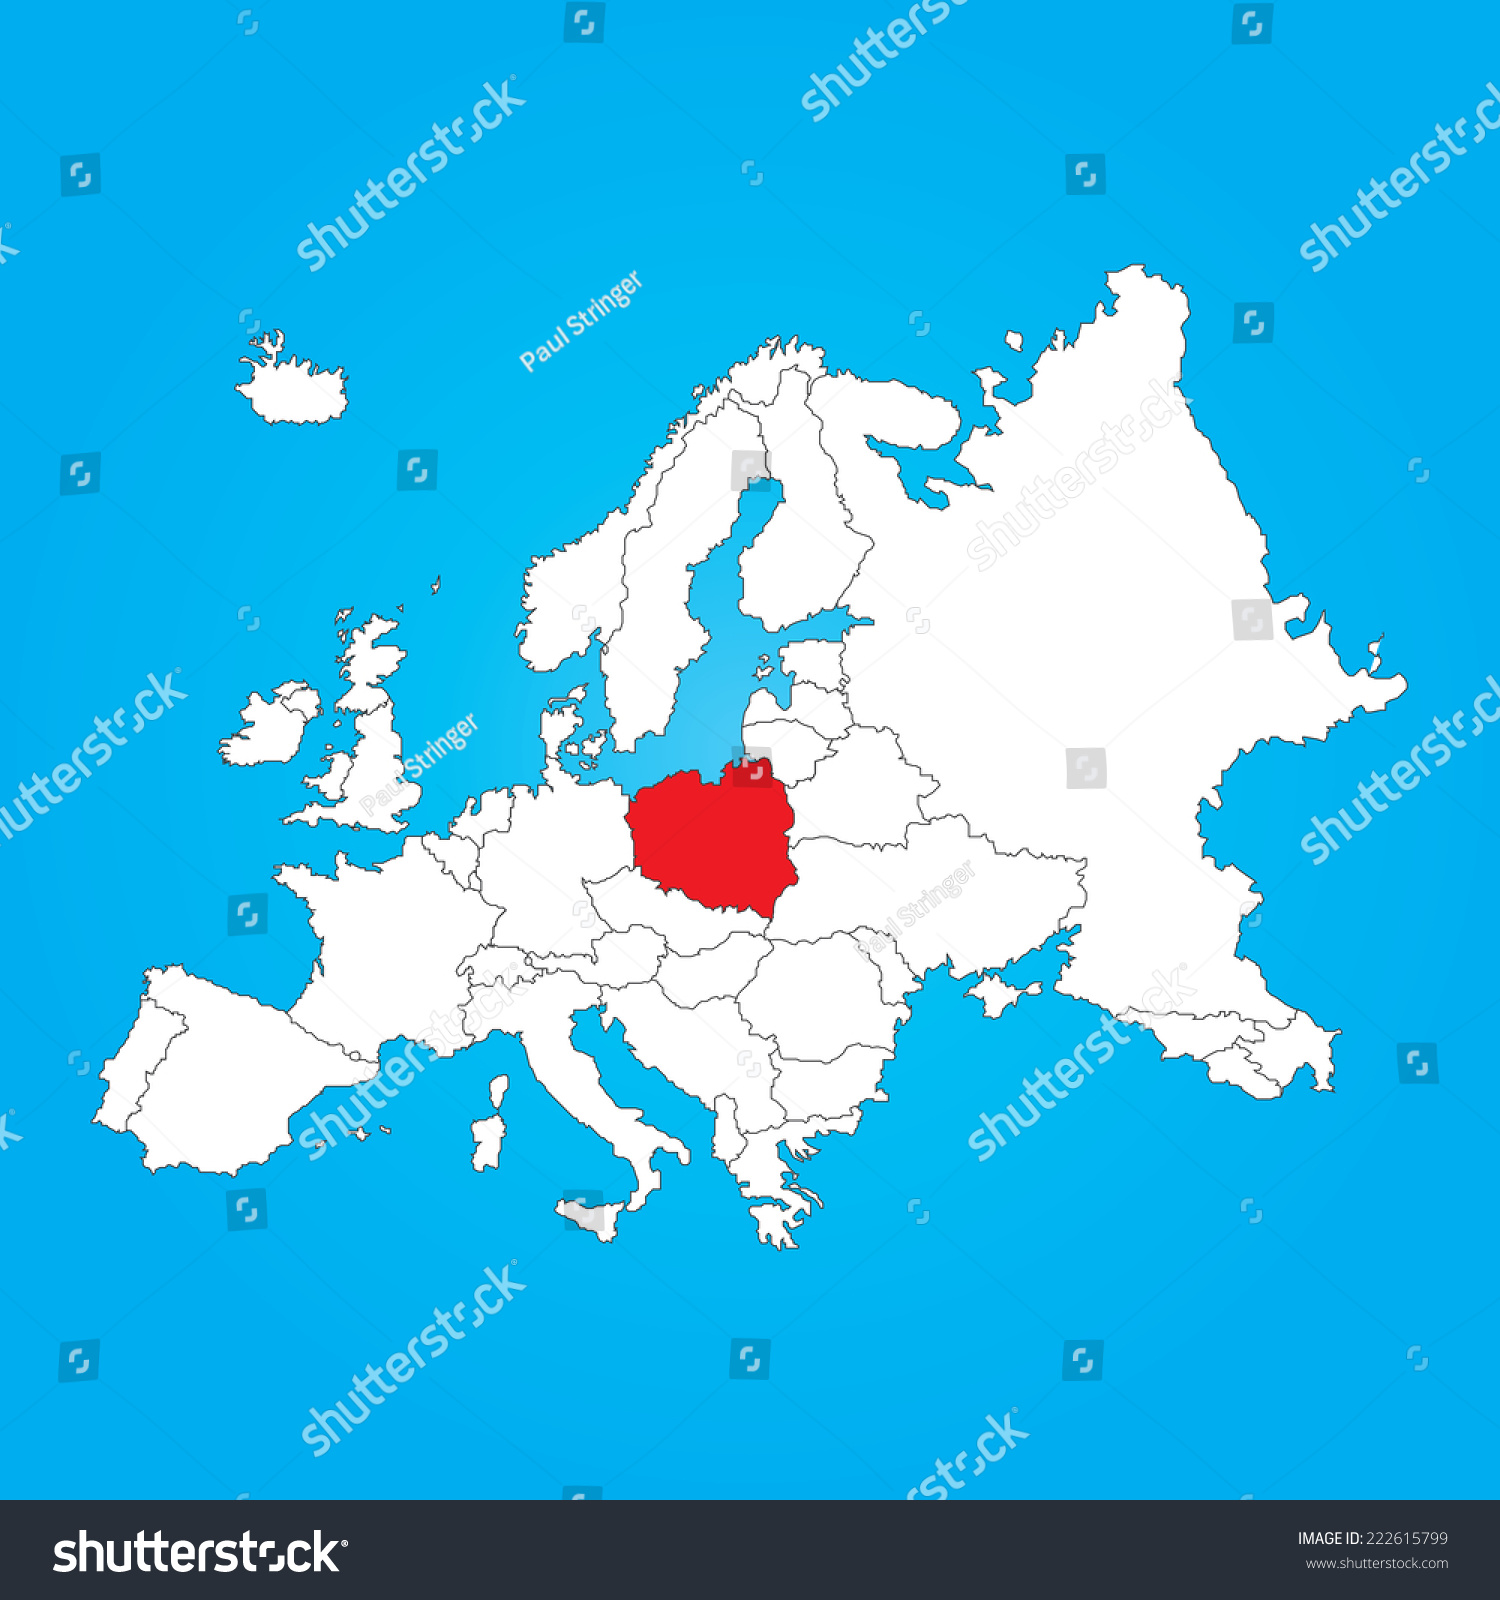 Map Europe Selected Country Poland Stock Vector (Royalty Free ...